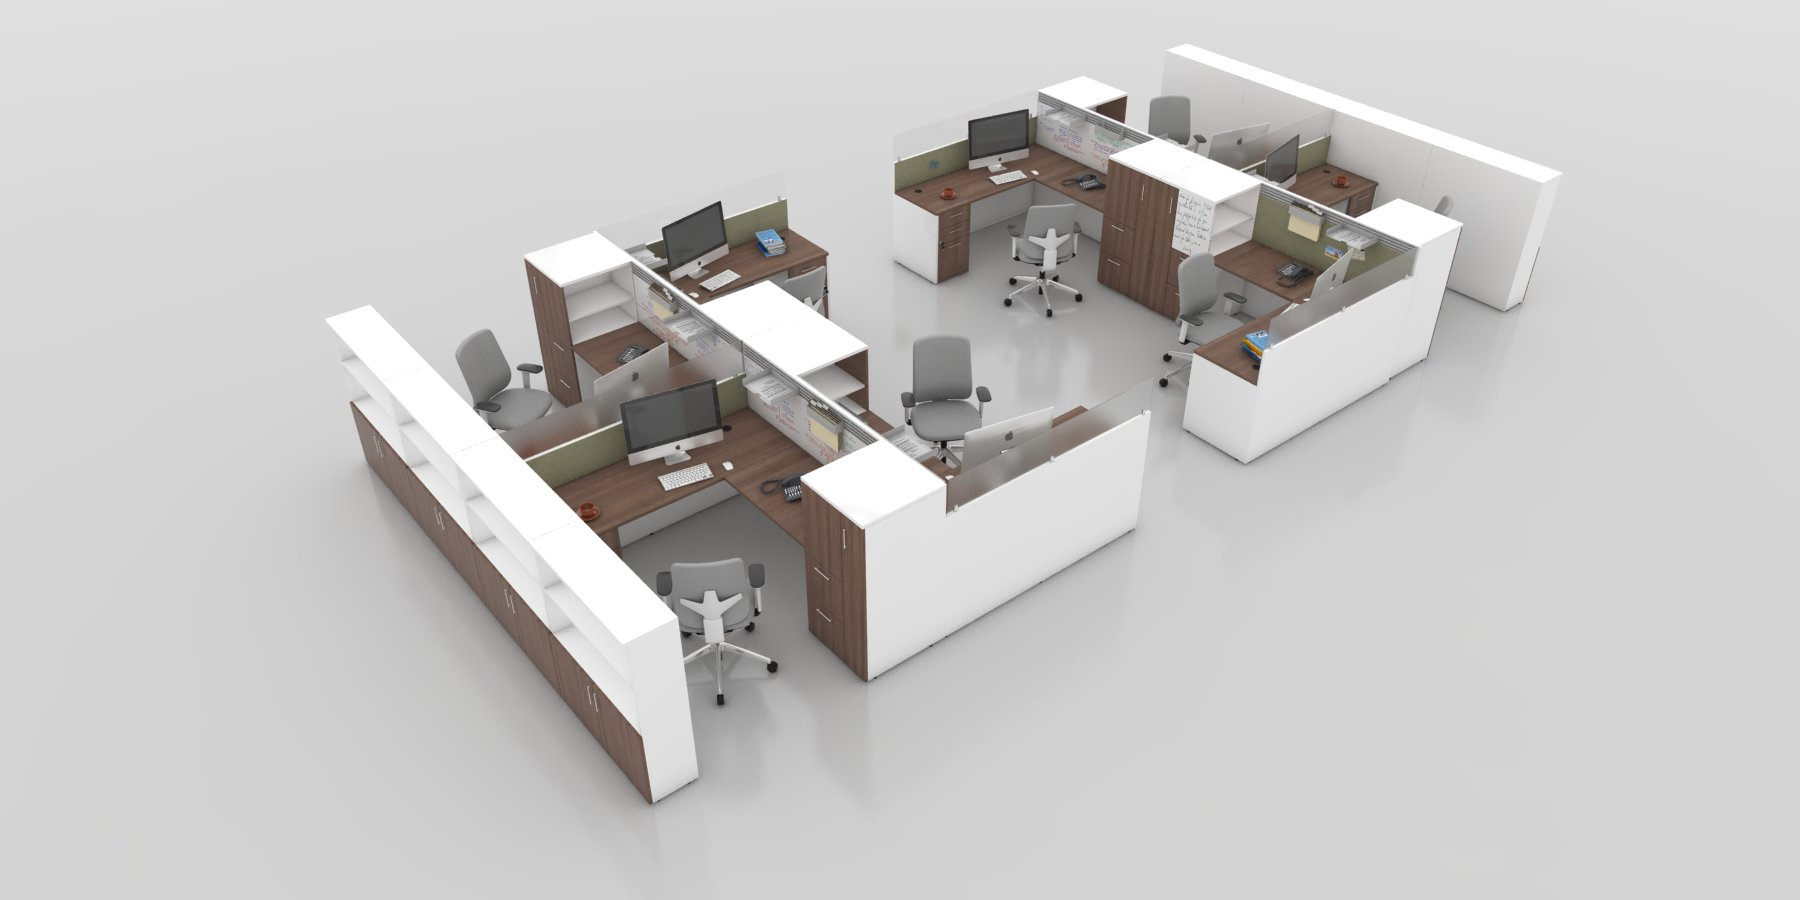 Office Furniture Design and Planning - Modern Cubicle Workstation Code Cube